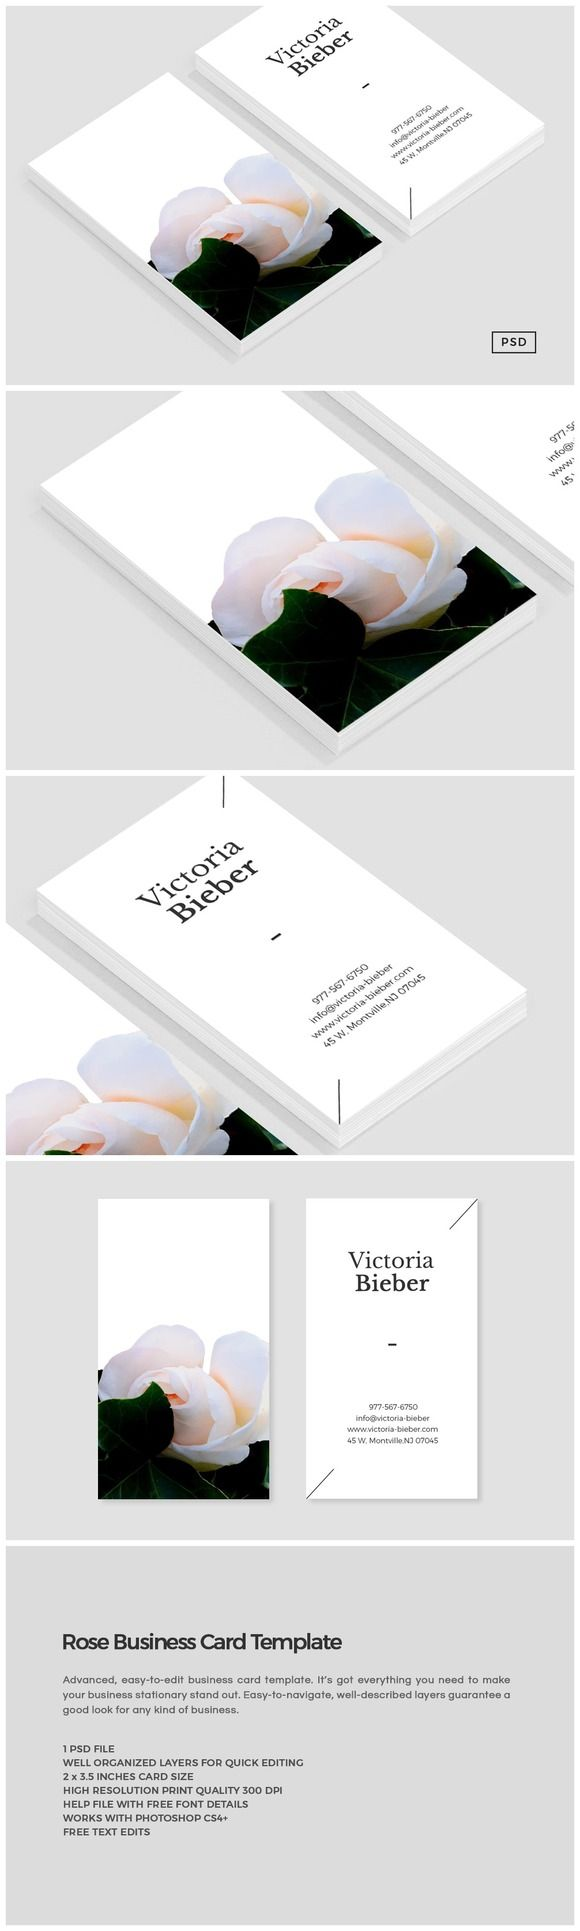 Rose Business Card Template Free Business Card Templates Business Card Design Card Design